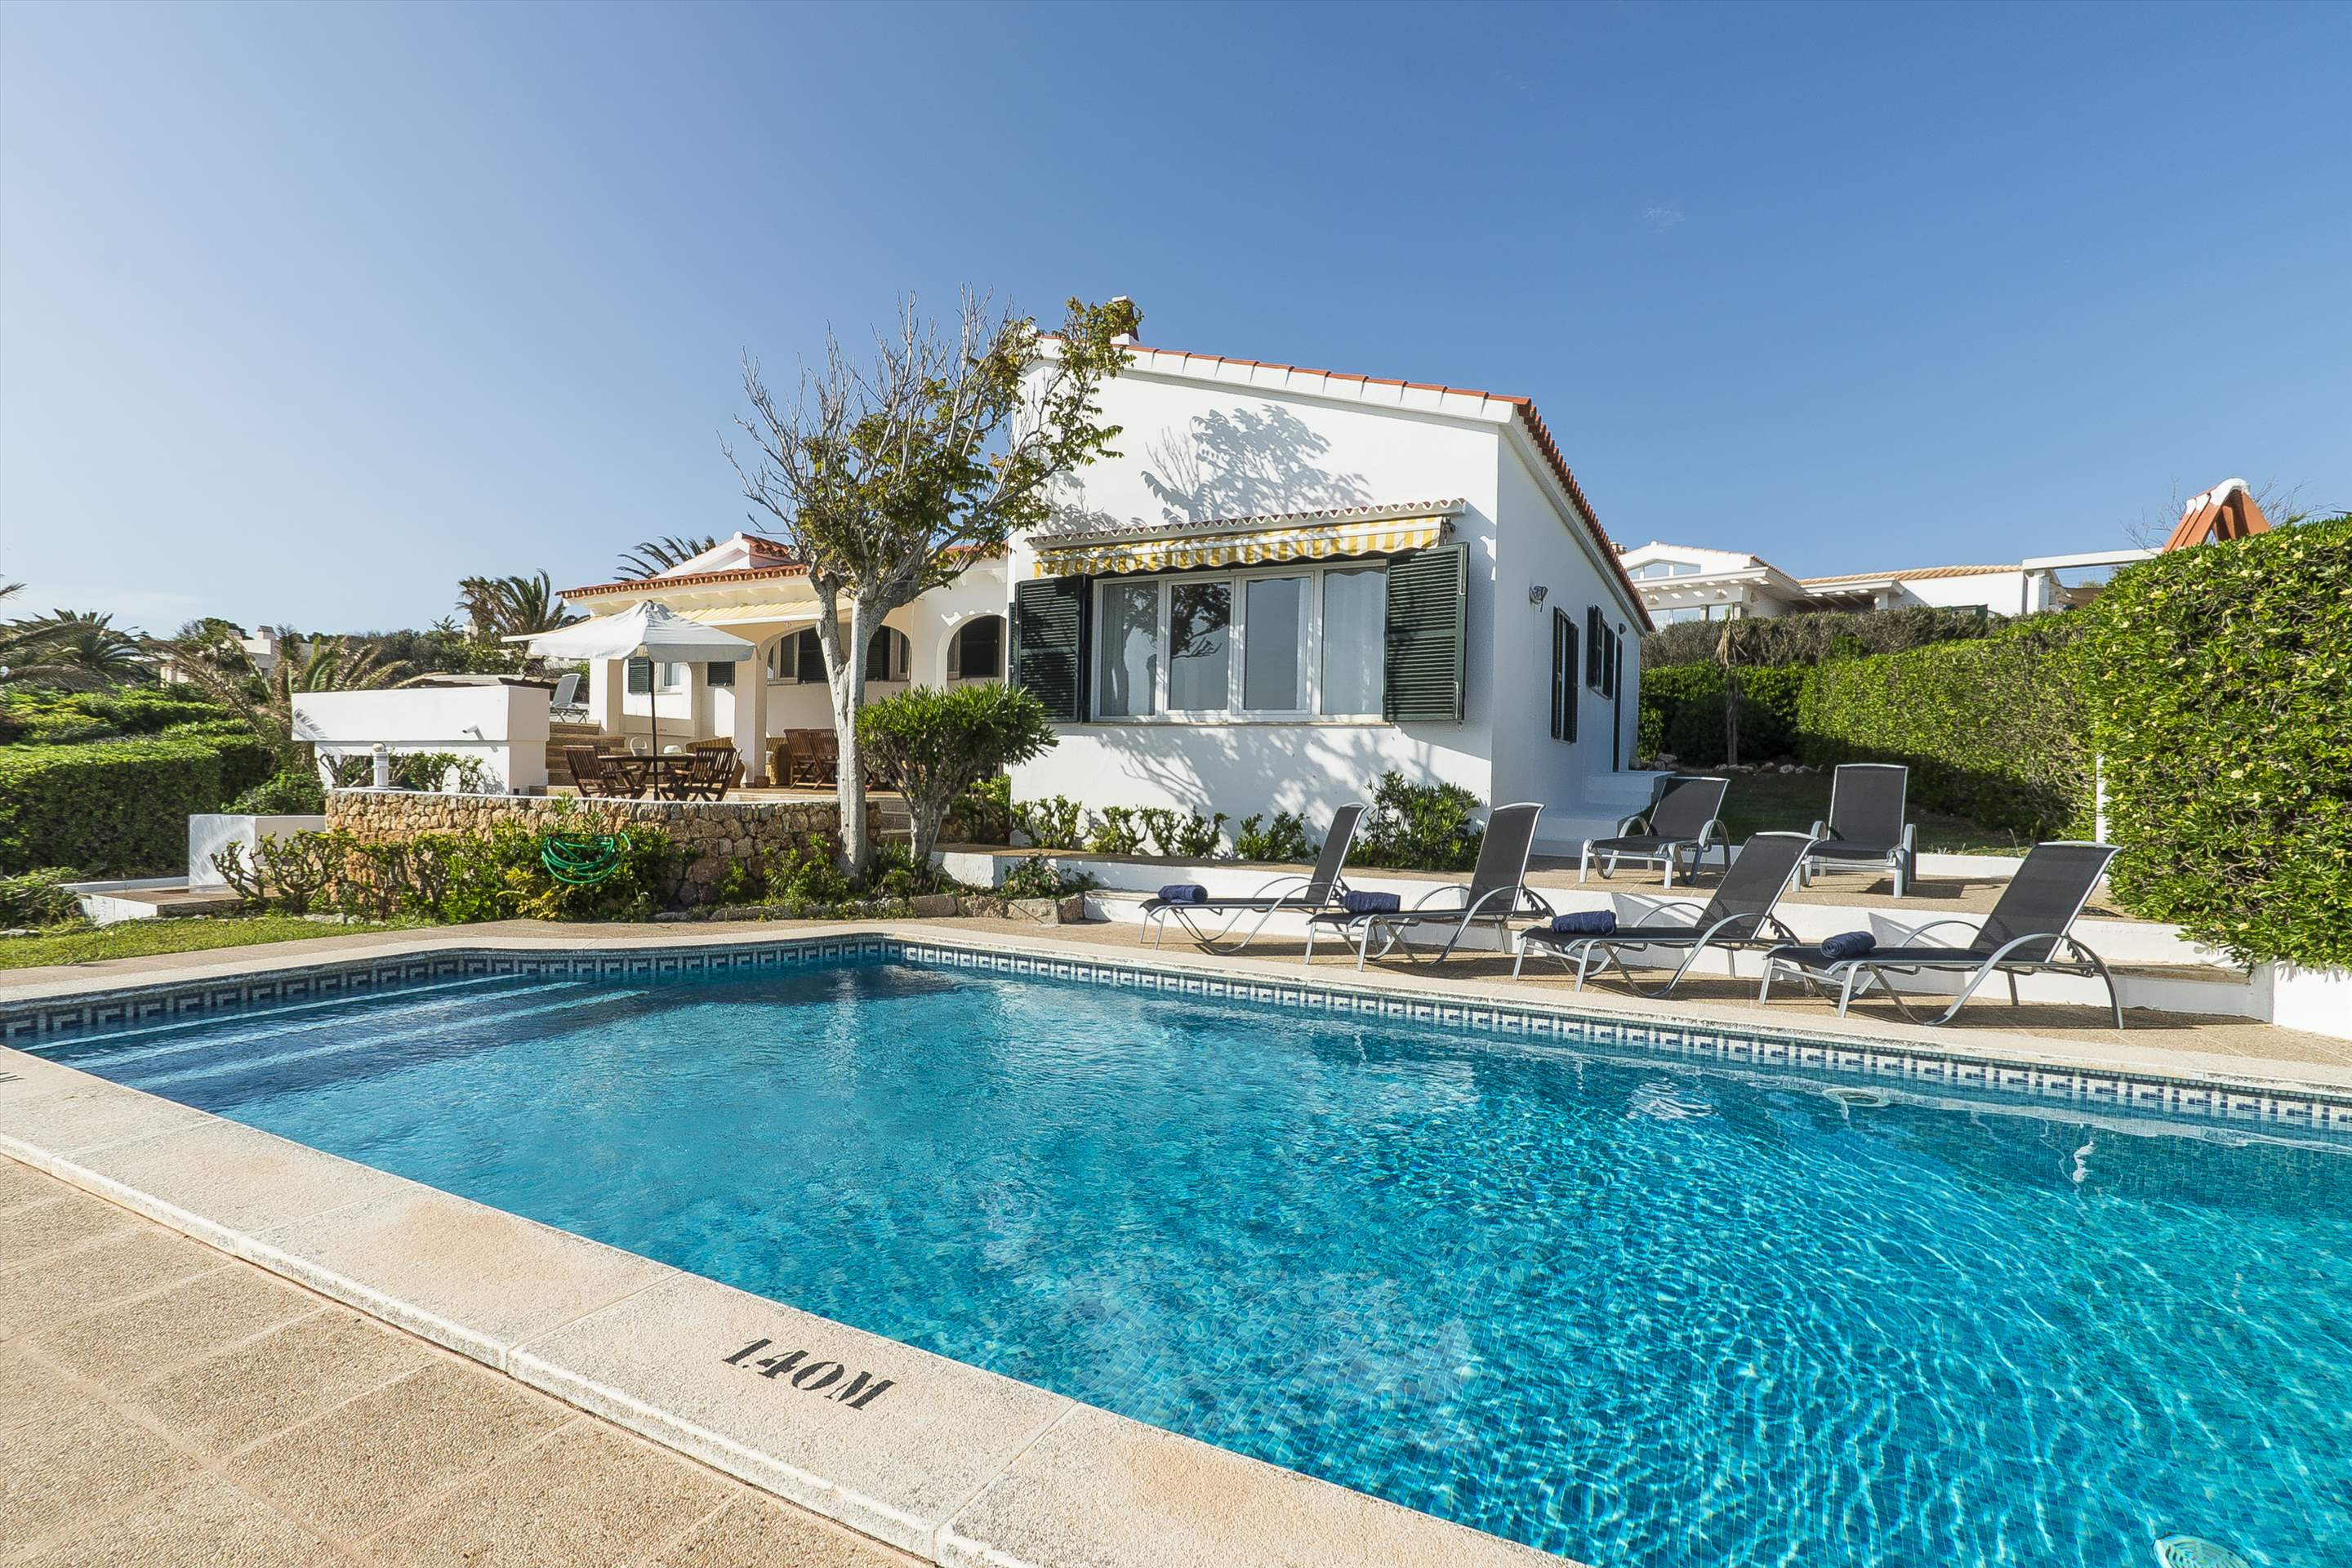 Villa El Güerito, 4 bedroom villa in Mahon, San Luis & South East, Menorca